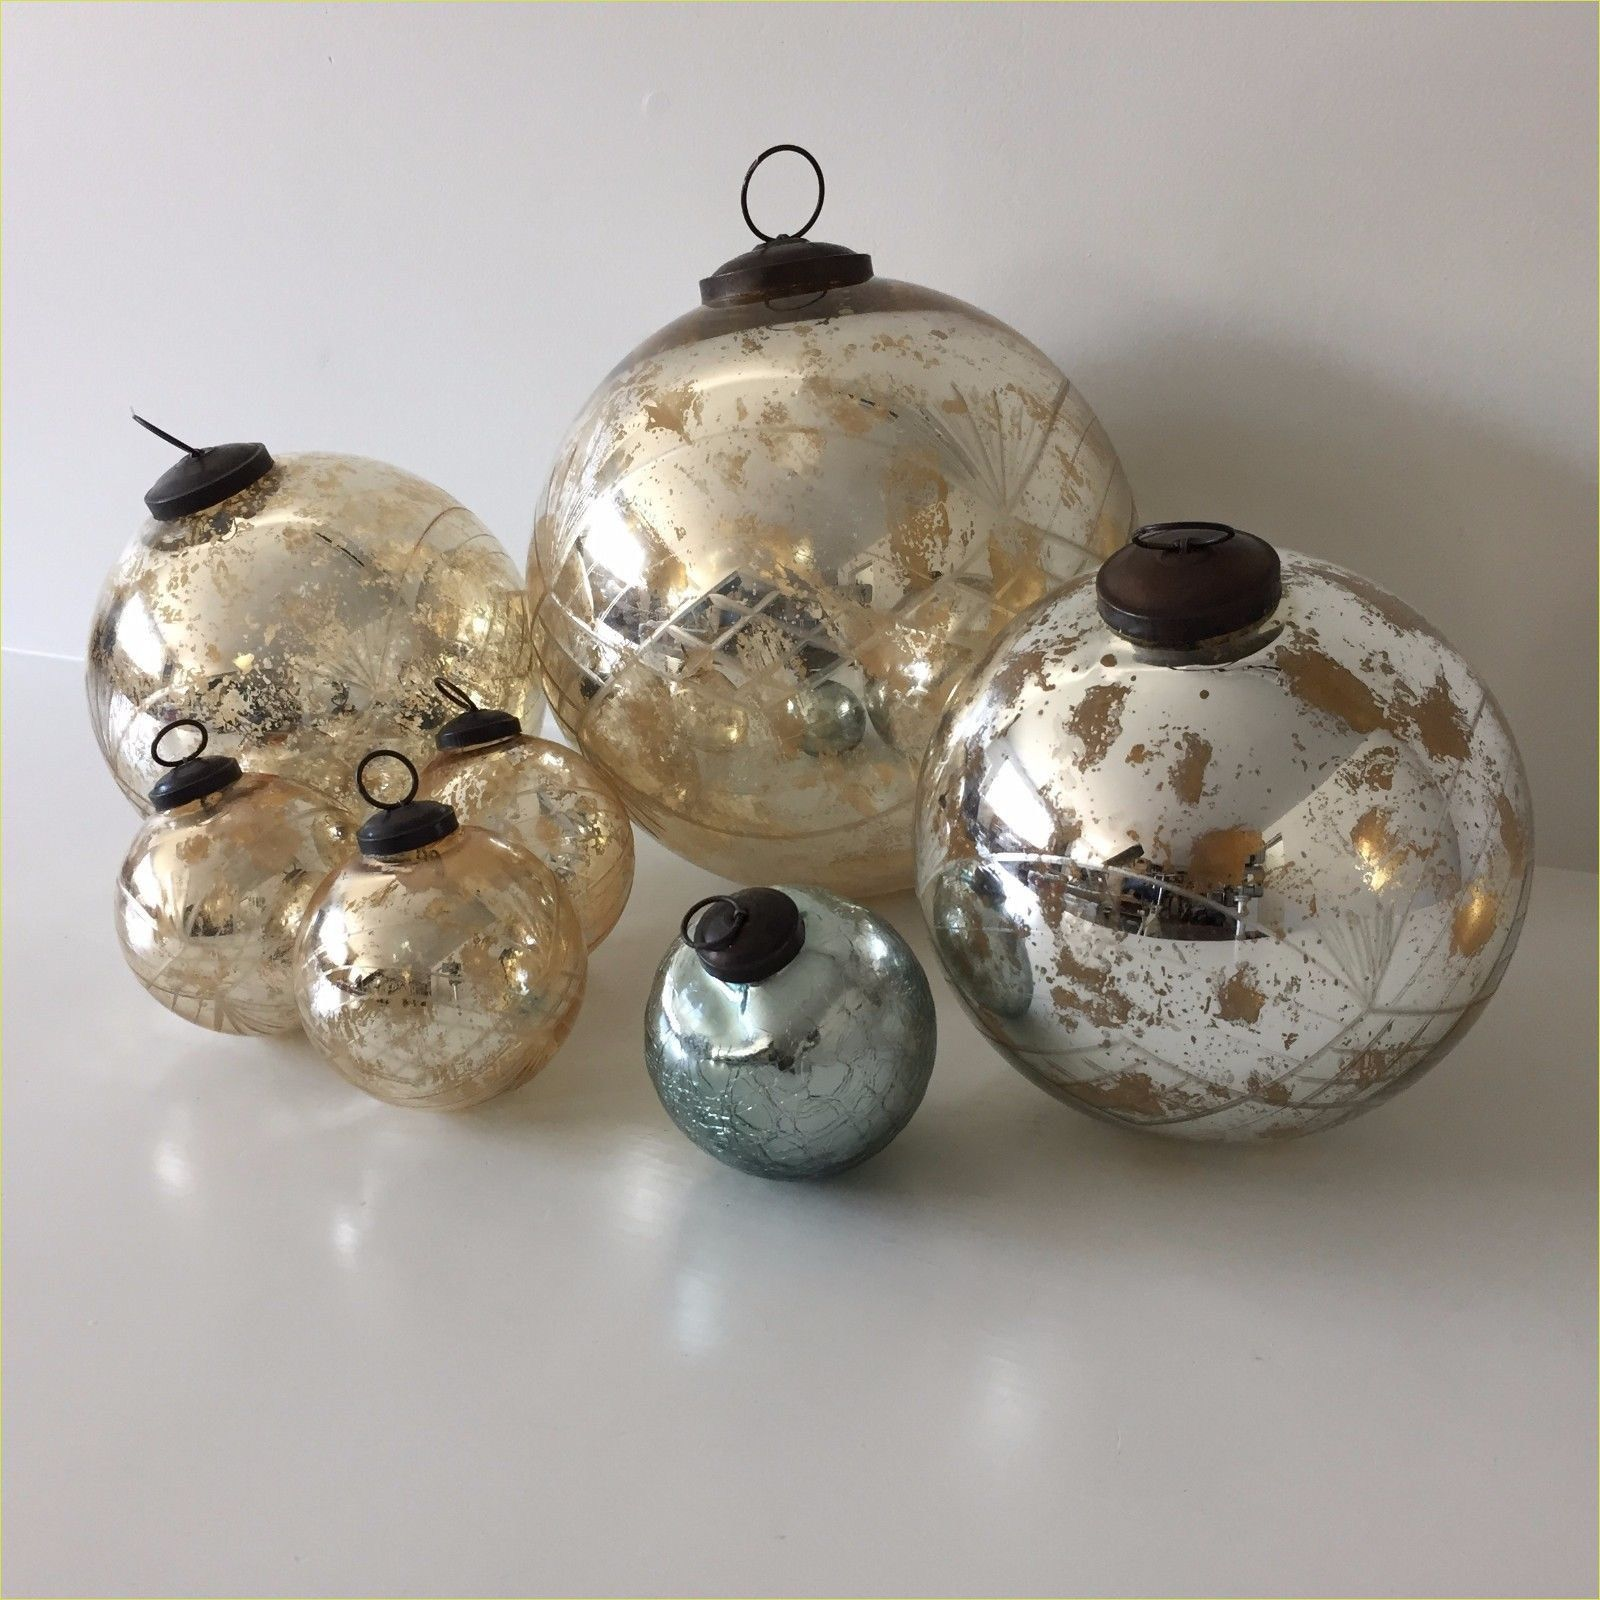 22 Awesome Pottery Barn Christmas Ornaments Ideas